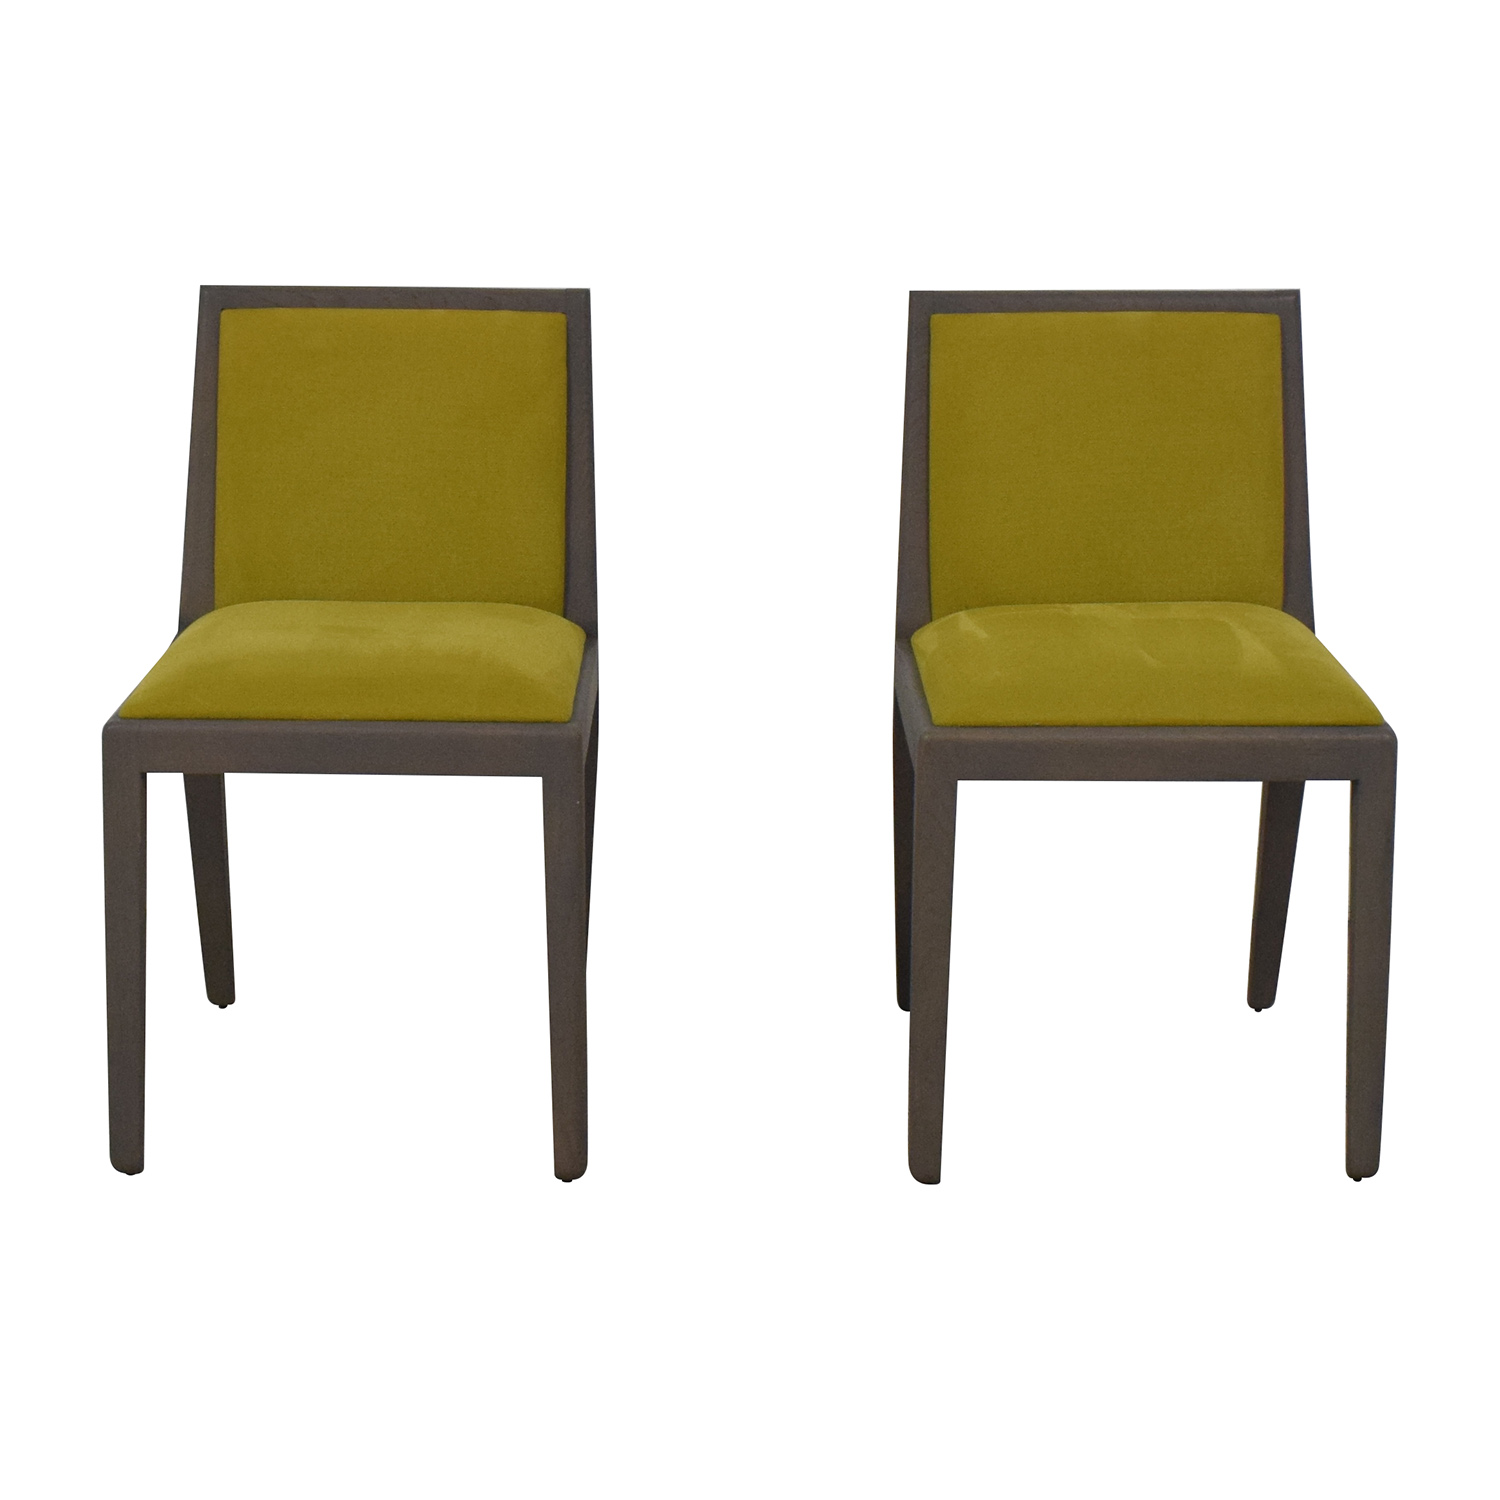 AVENUE ROAD AVENUE ROAD Christophe Delcourt EOL Dining Chairs nj